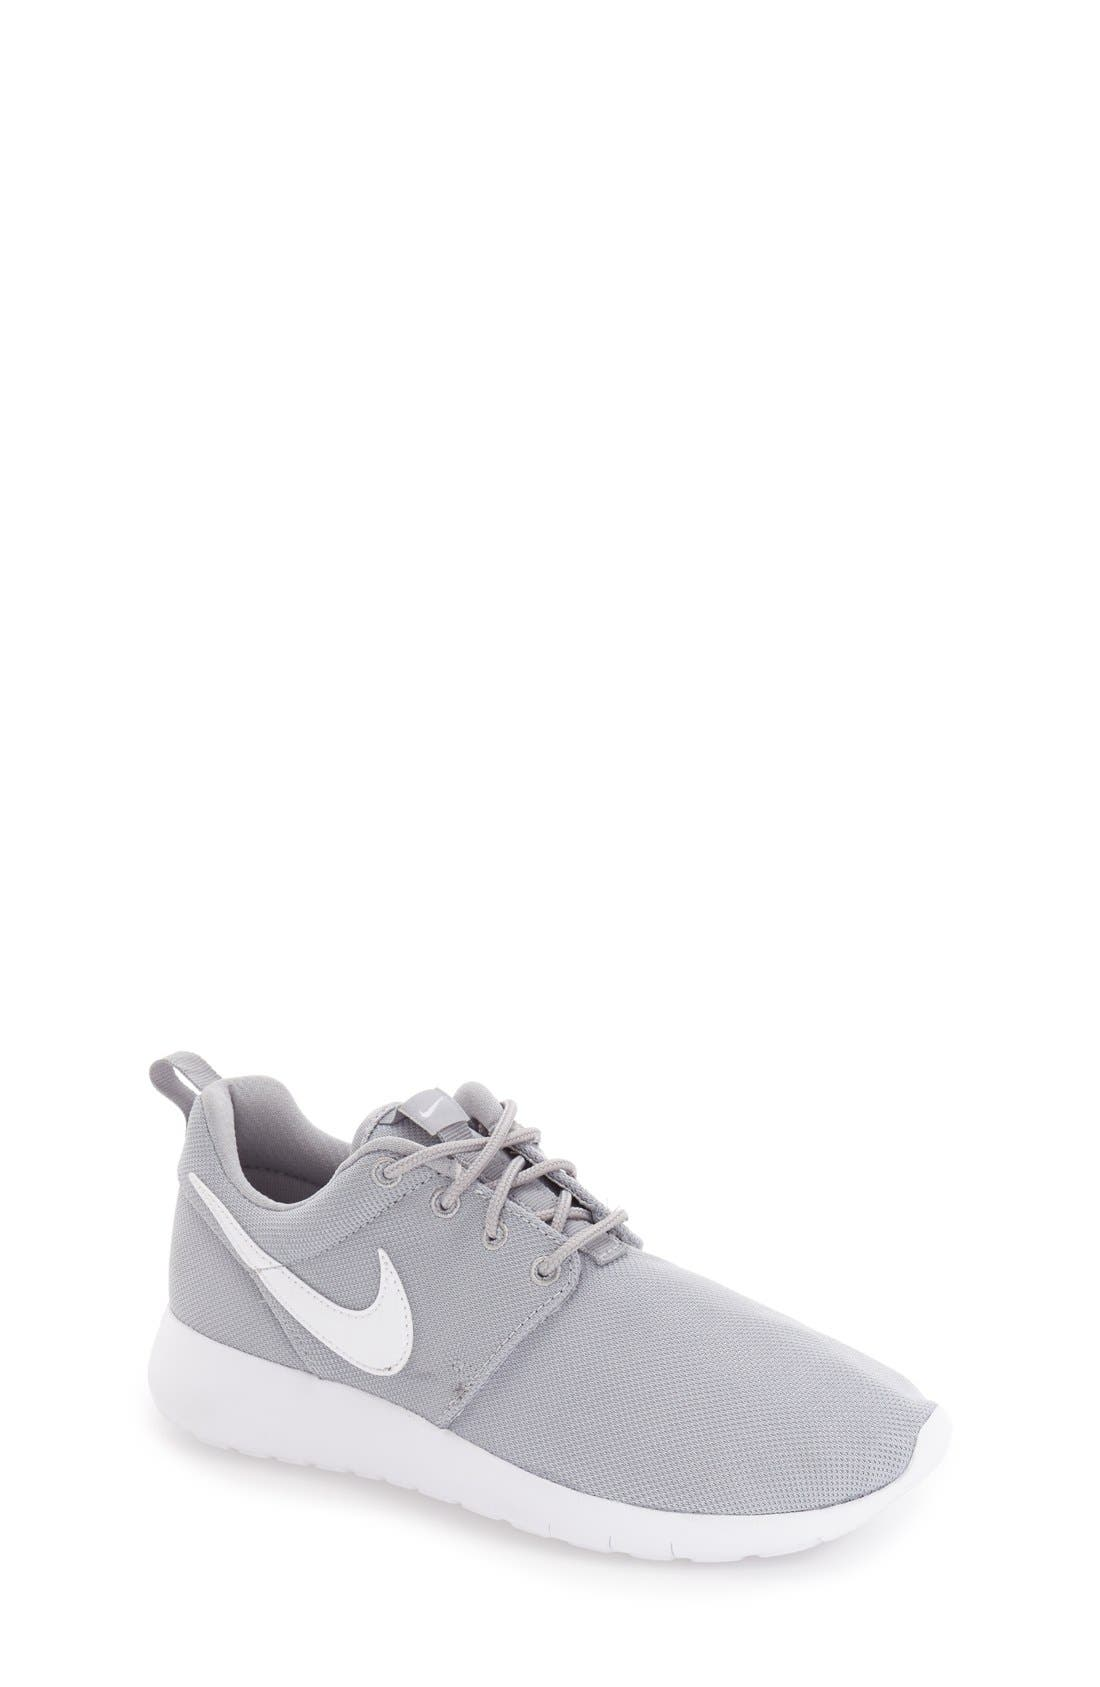 'Roshe Run' Sneaker,                             Main thumbnail 29, color,